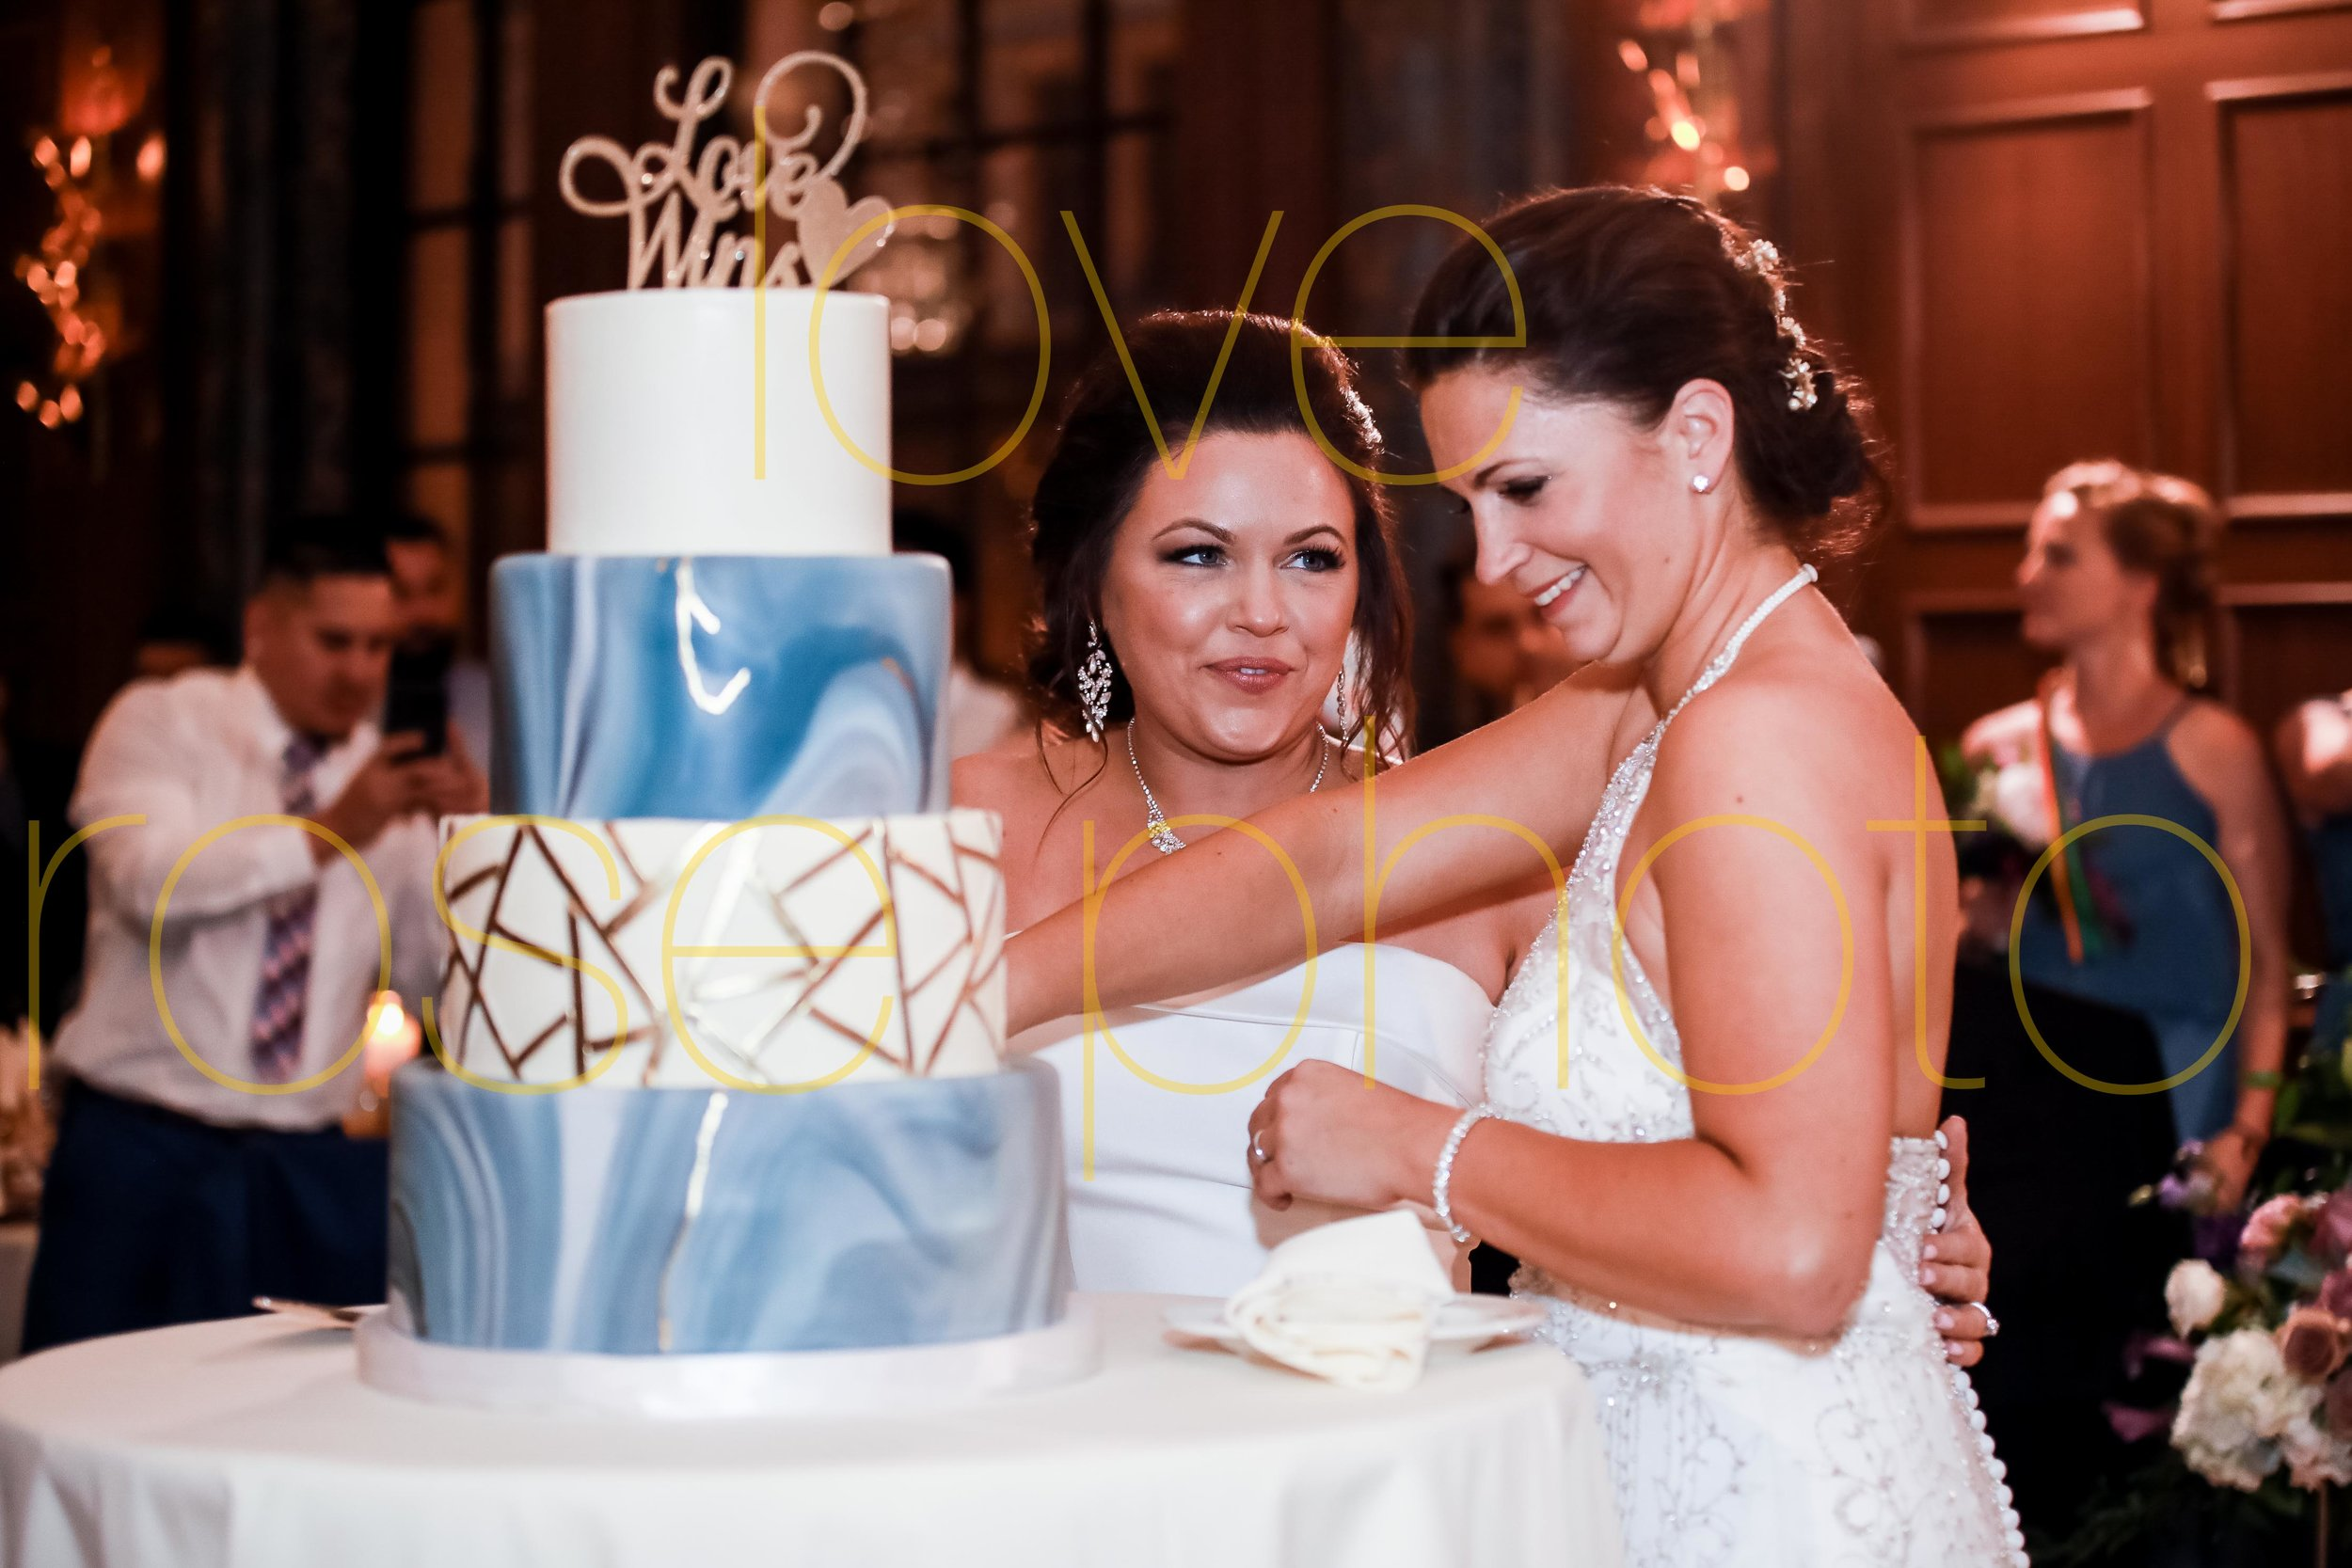 sophie + melissa love rose photo gay wedding chicago pride 2019 -77.jpg